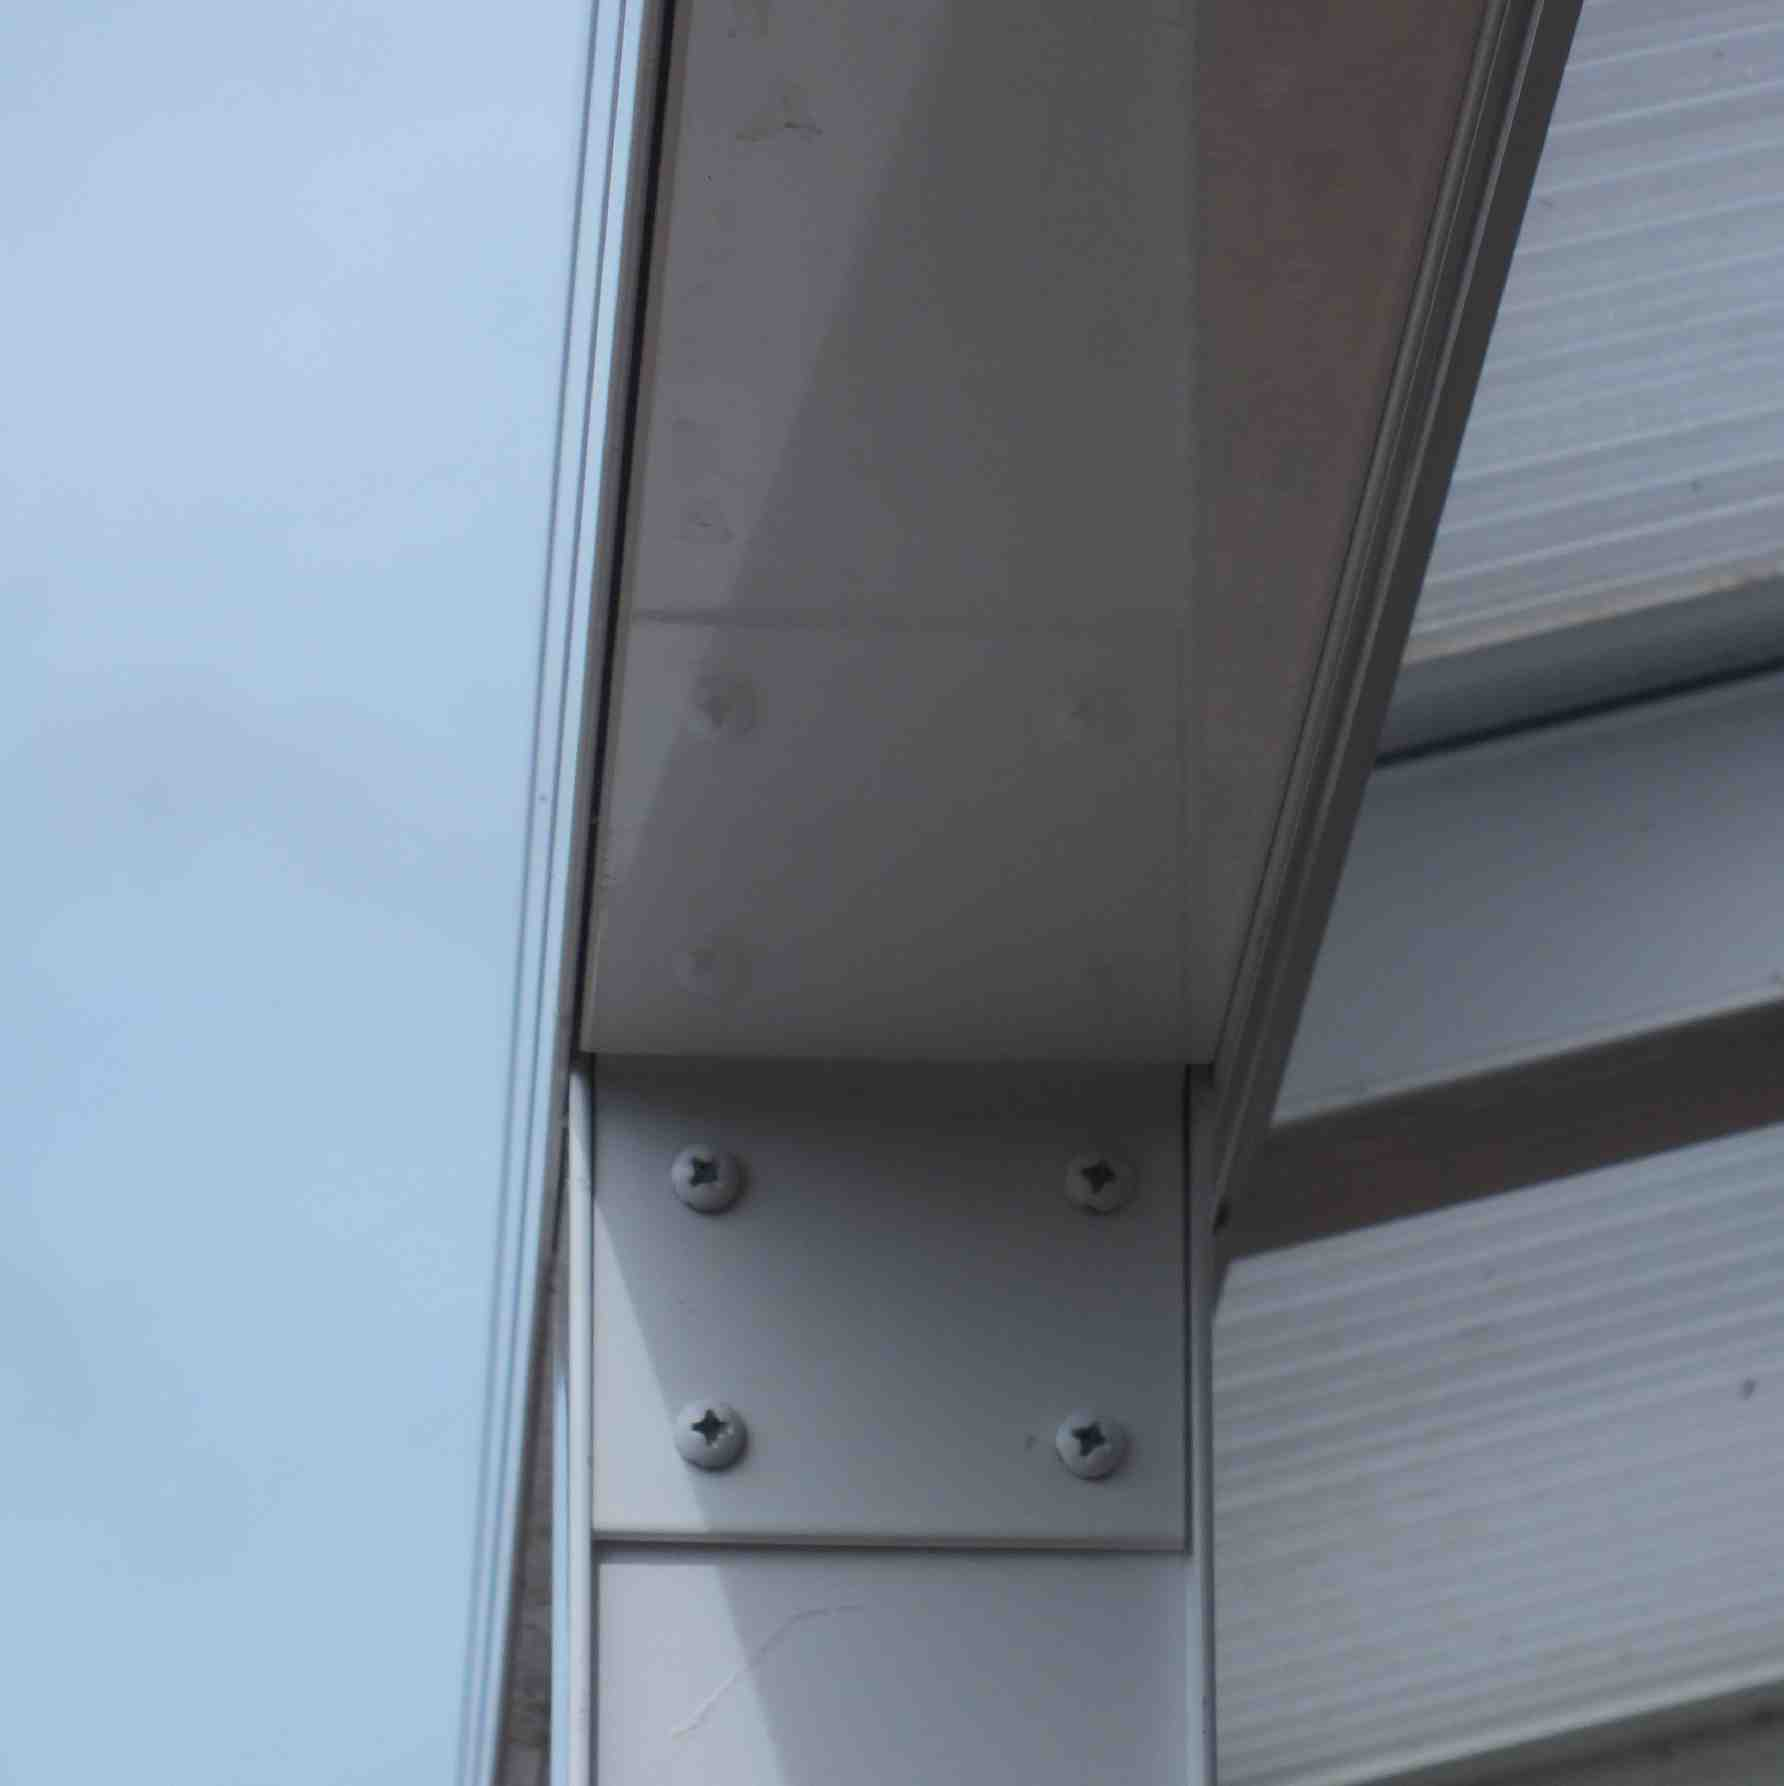 Affordable Omega Verandah with 16mm Polycarbonate Glazing - 5.2m (W) x 2.0m (P), (3) Supporting Posts